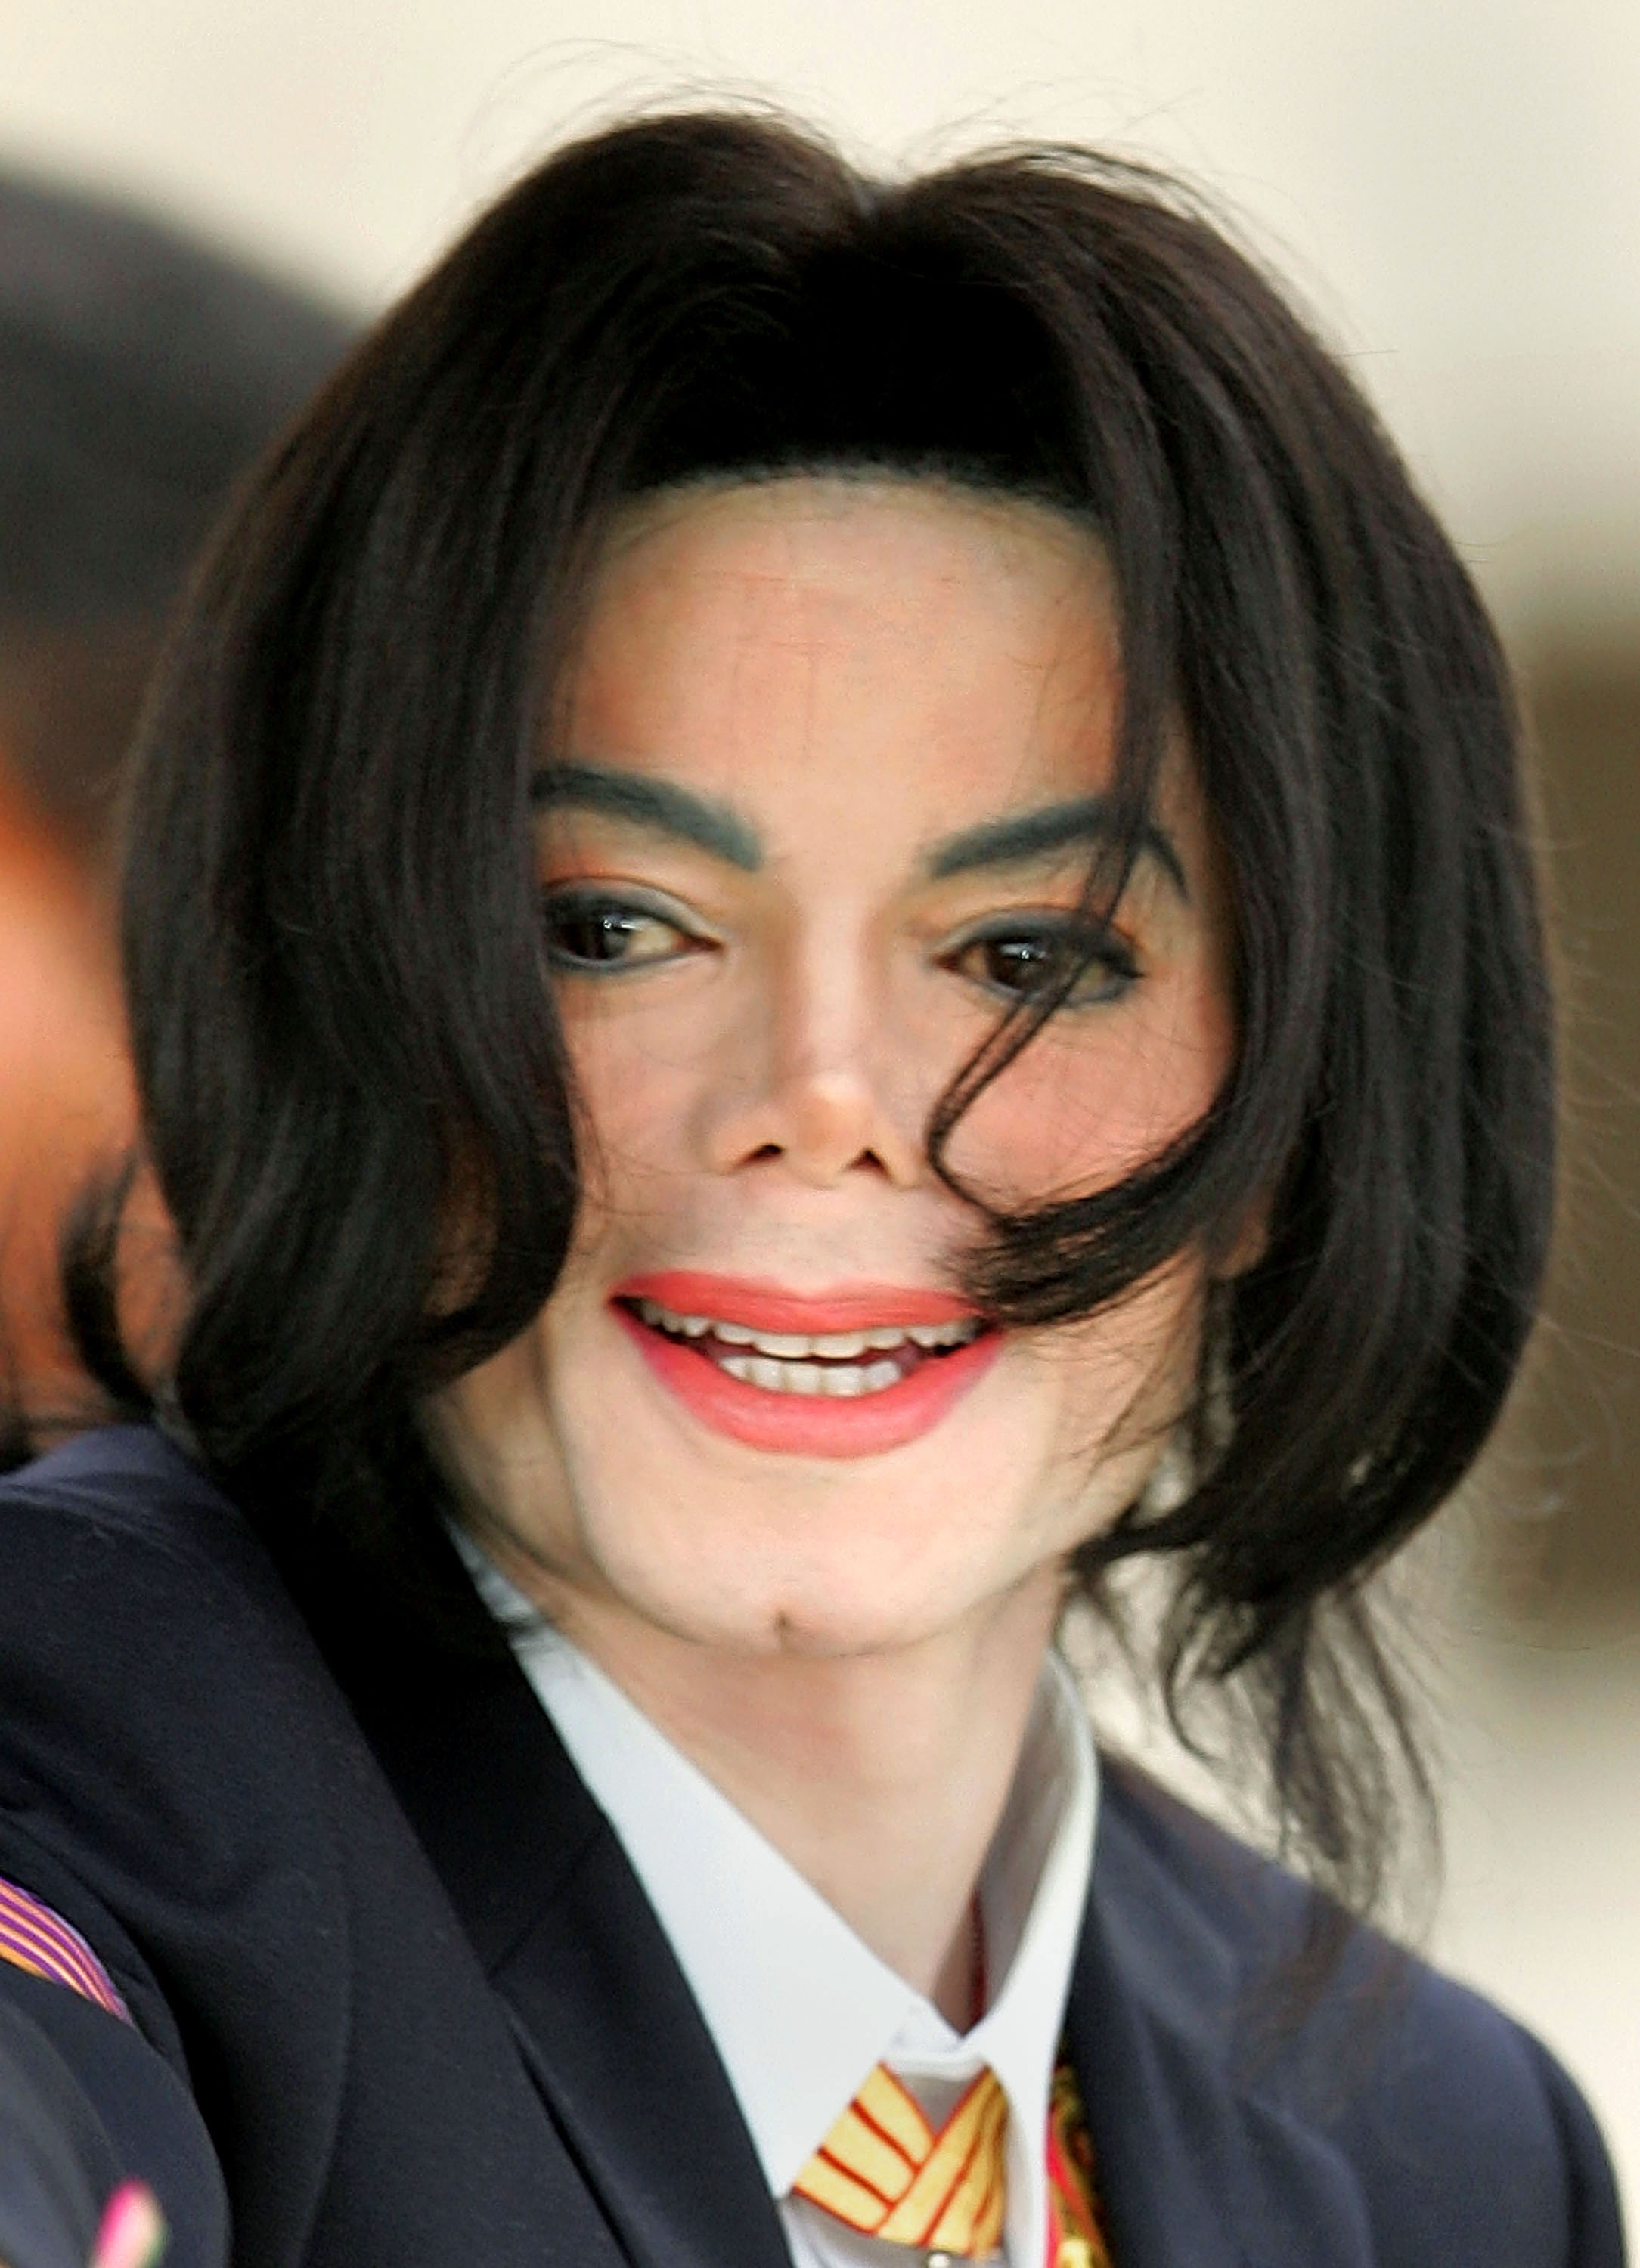 michael jackson at court